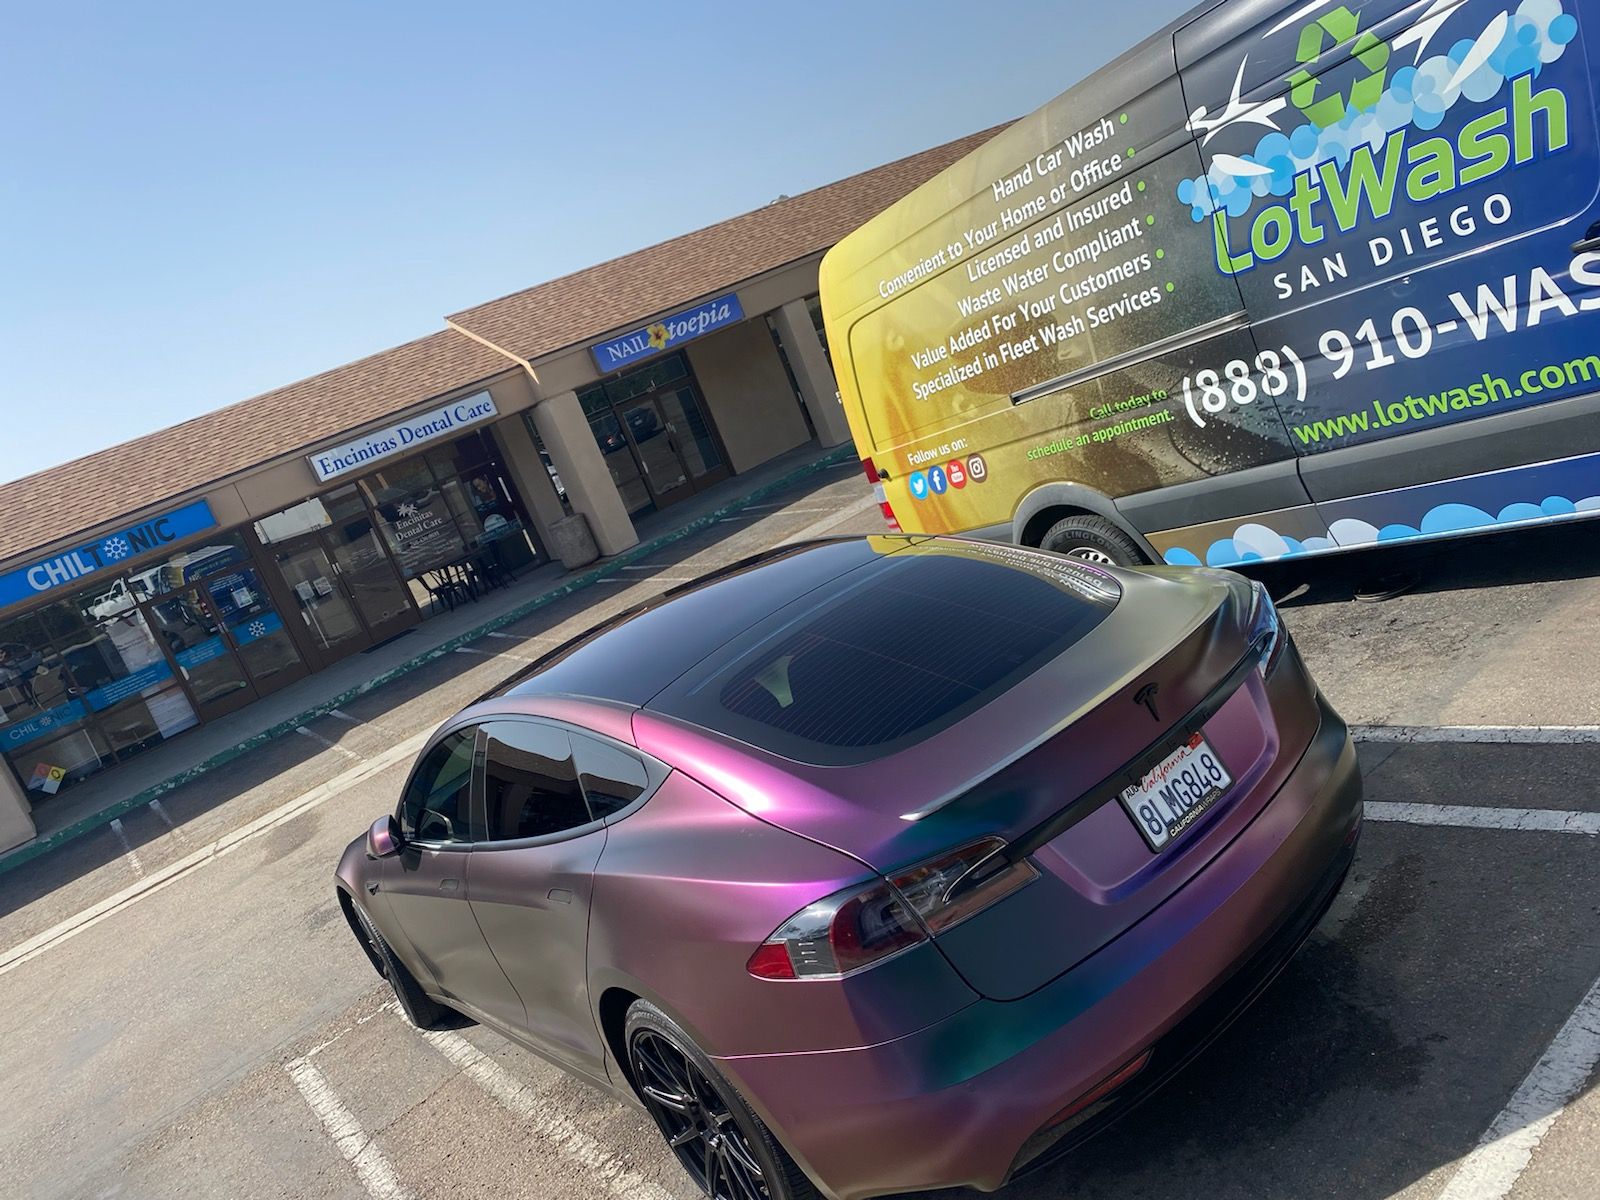 LotWash, Mobile Auto Detailing in San Diego, BulletProof Sealant on Tesla